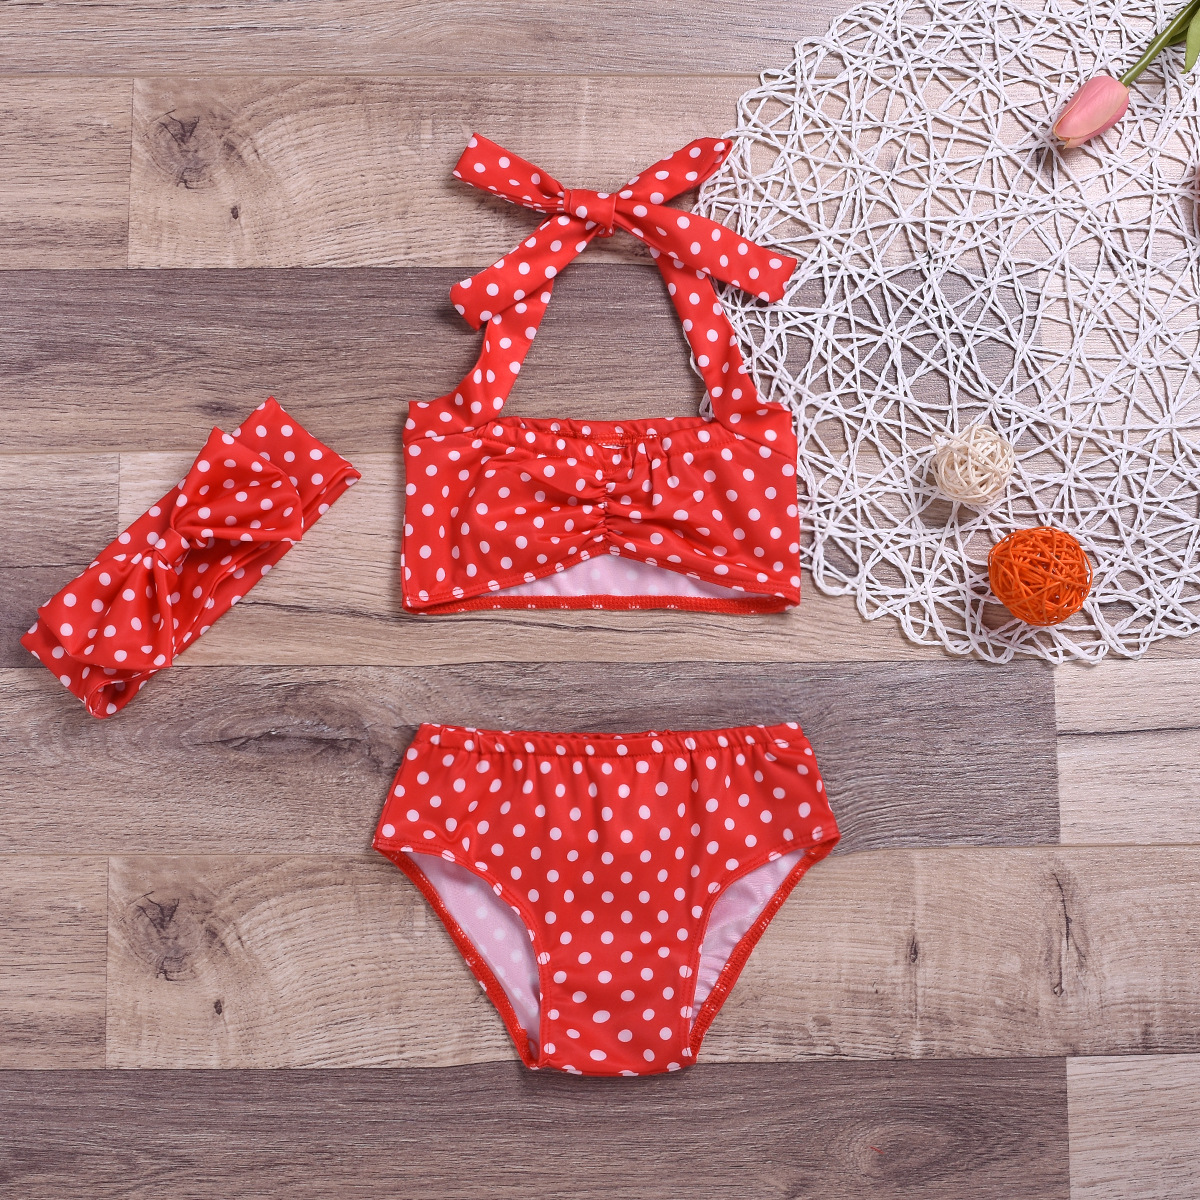 INS Summer Infants Girls Dotted Red Bikini Two-piece Swimsuits Hot Springs Swimming